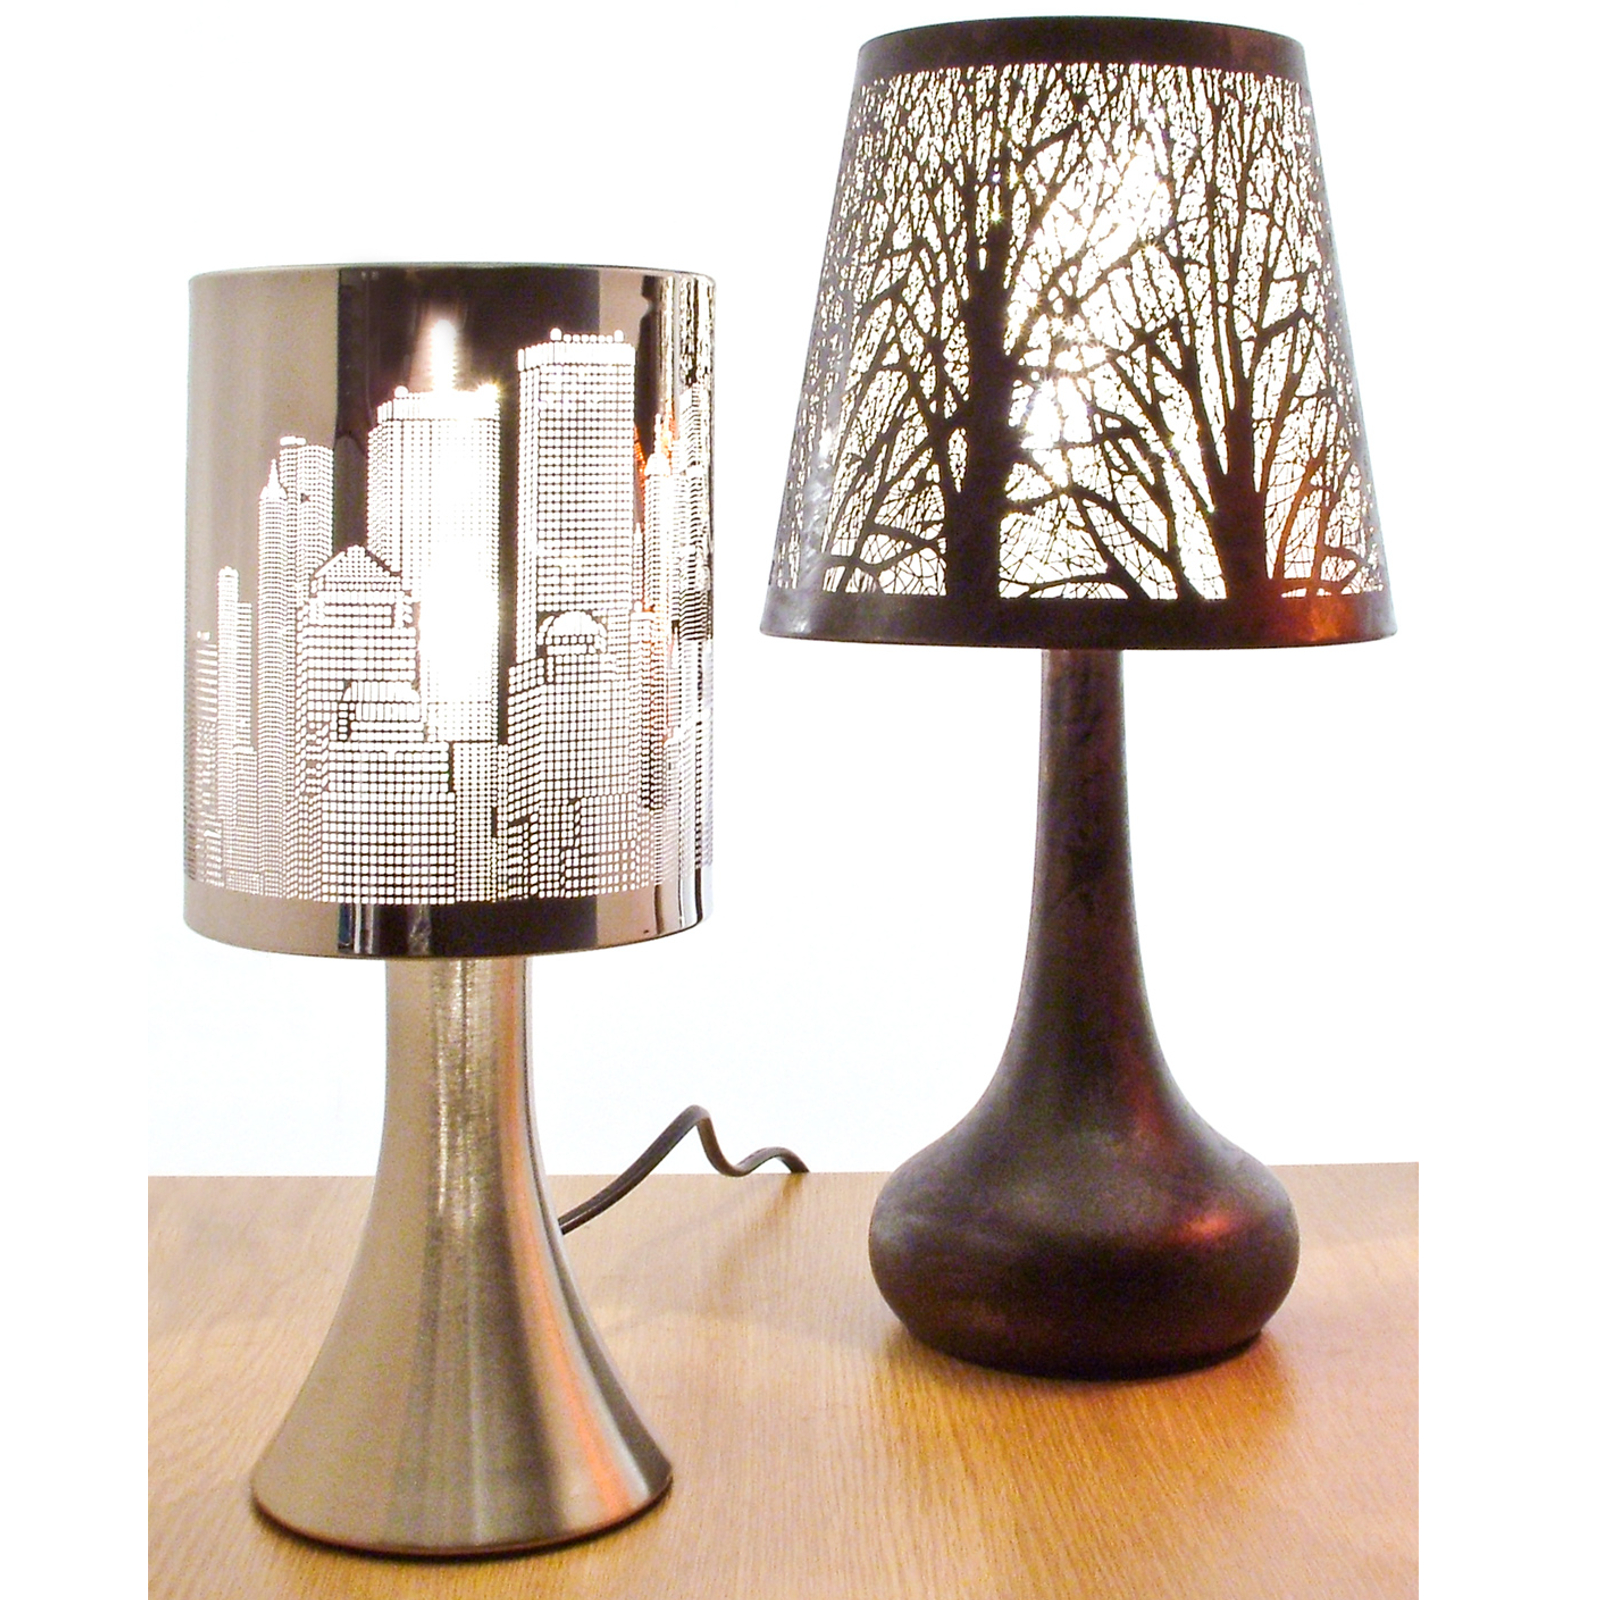 Chrome touch lamp dimmer bedside table light new york city skyline - Bedside lamps with dimmer ...